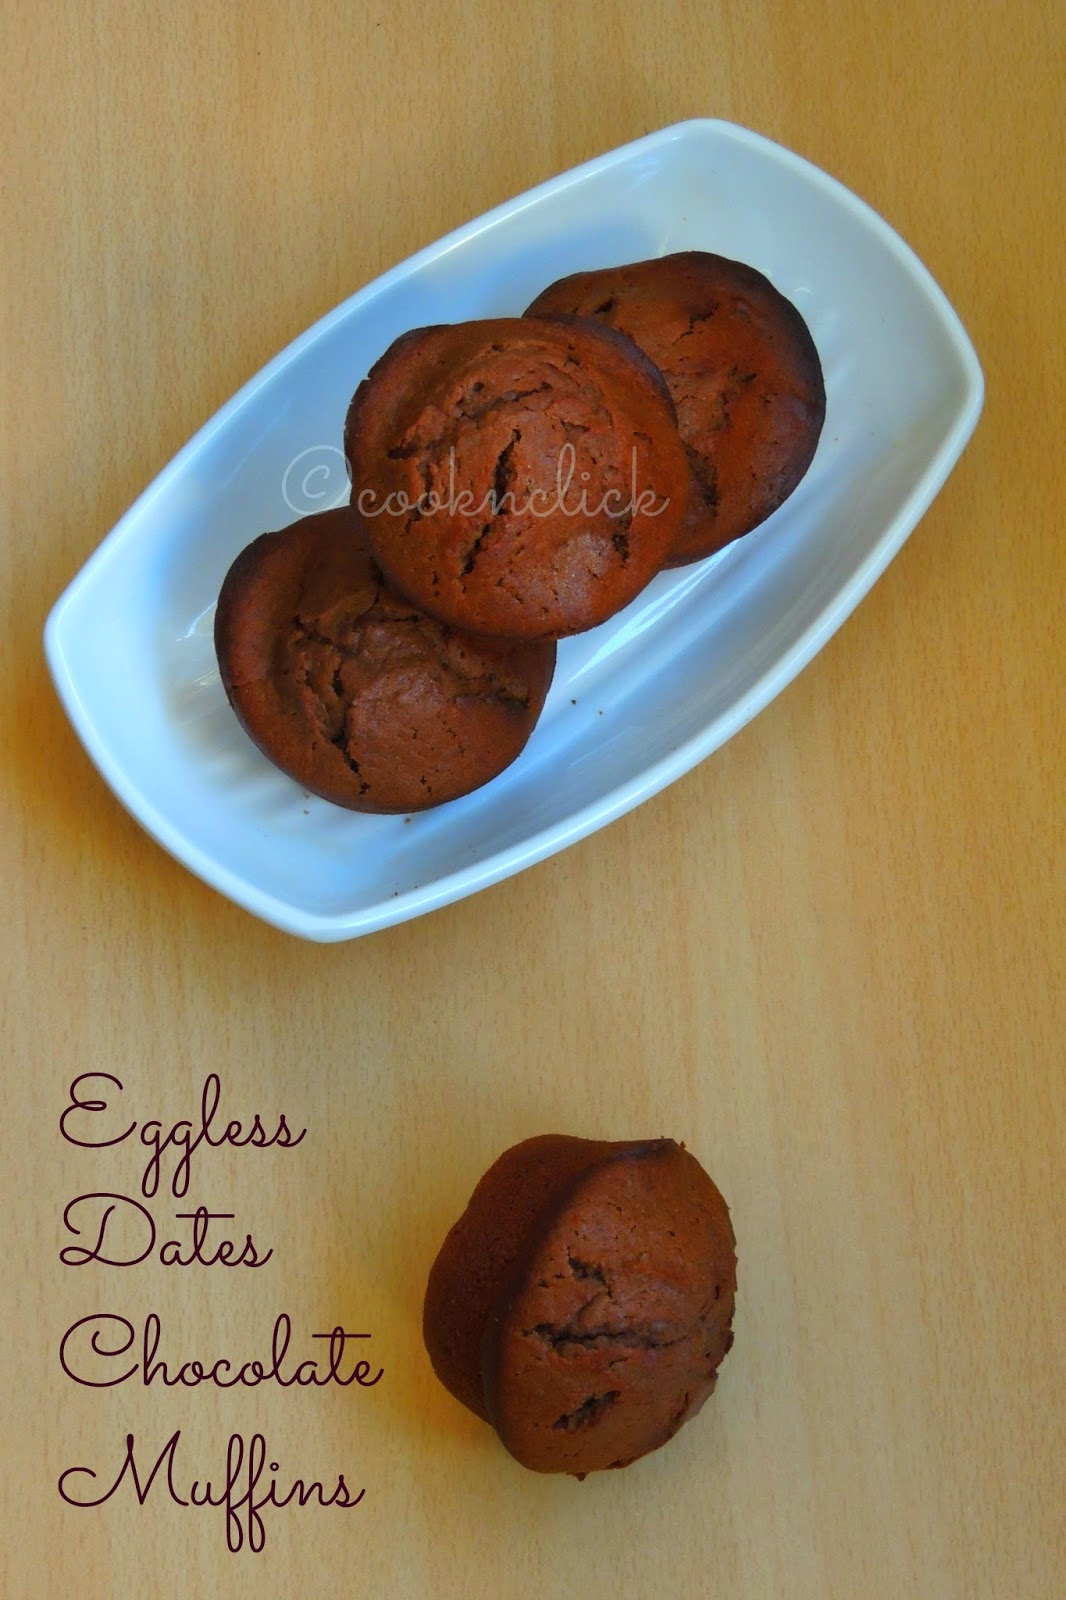 Eggless muffins with chocolate and dates